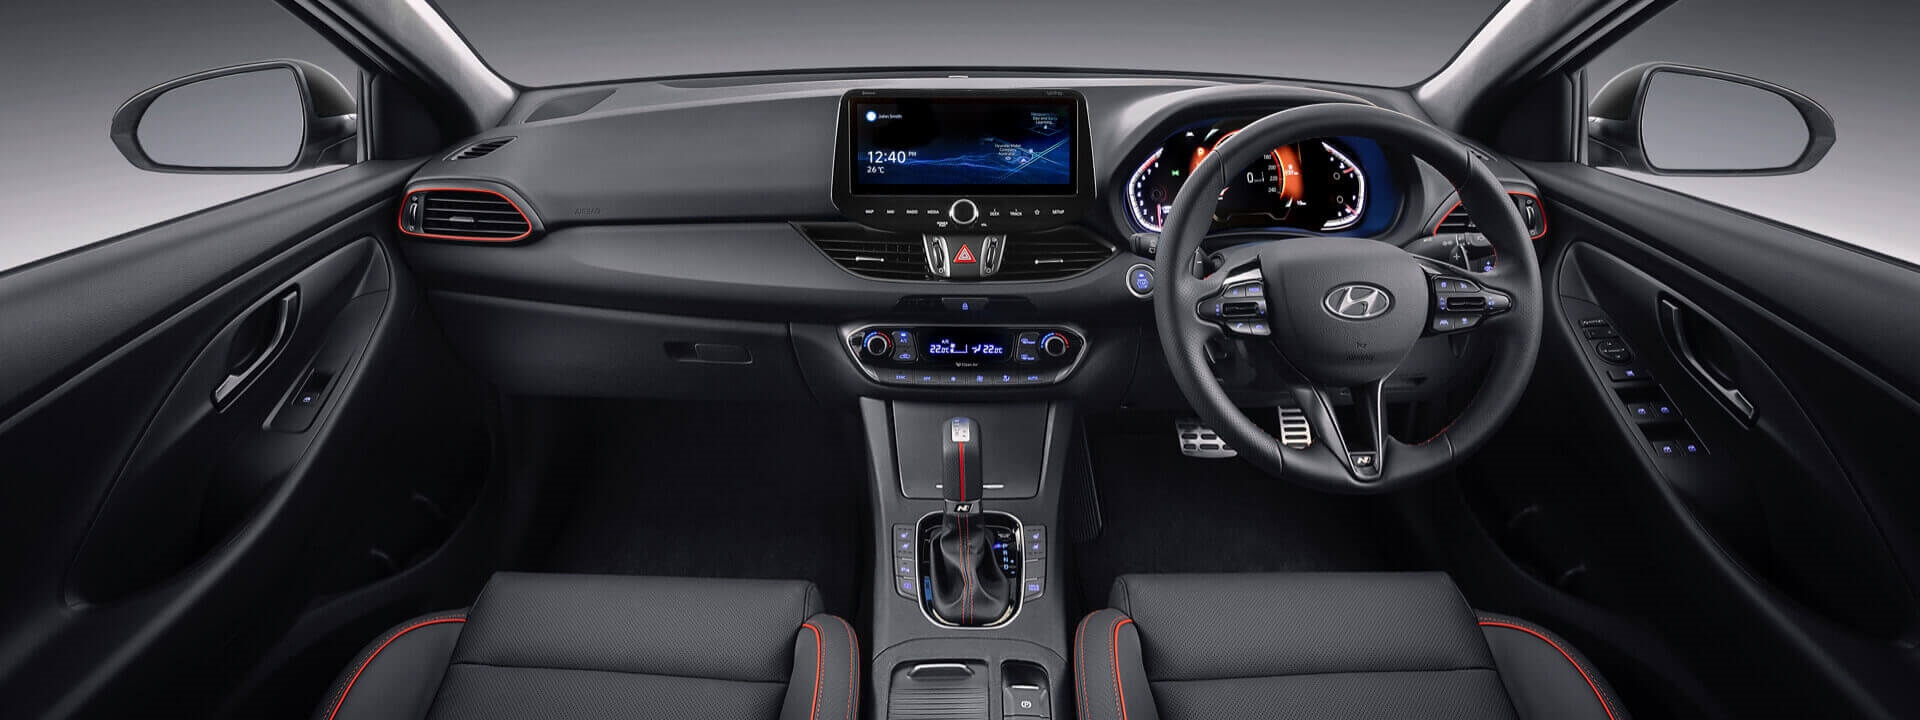 Hyundai i30 Hatch N Line Interior